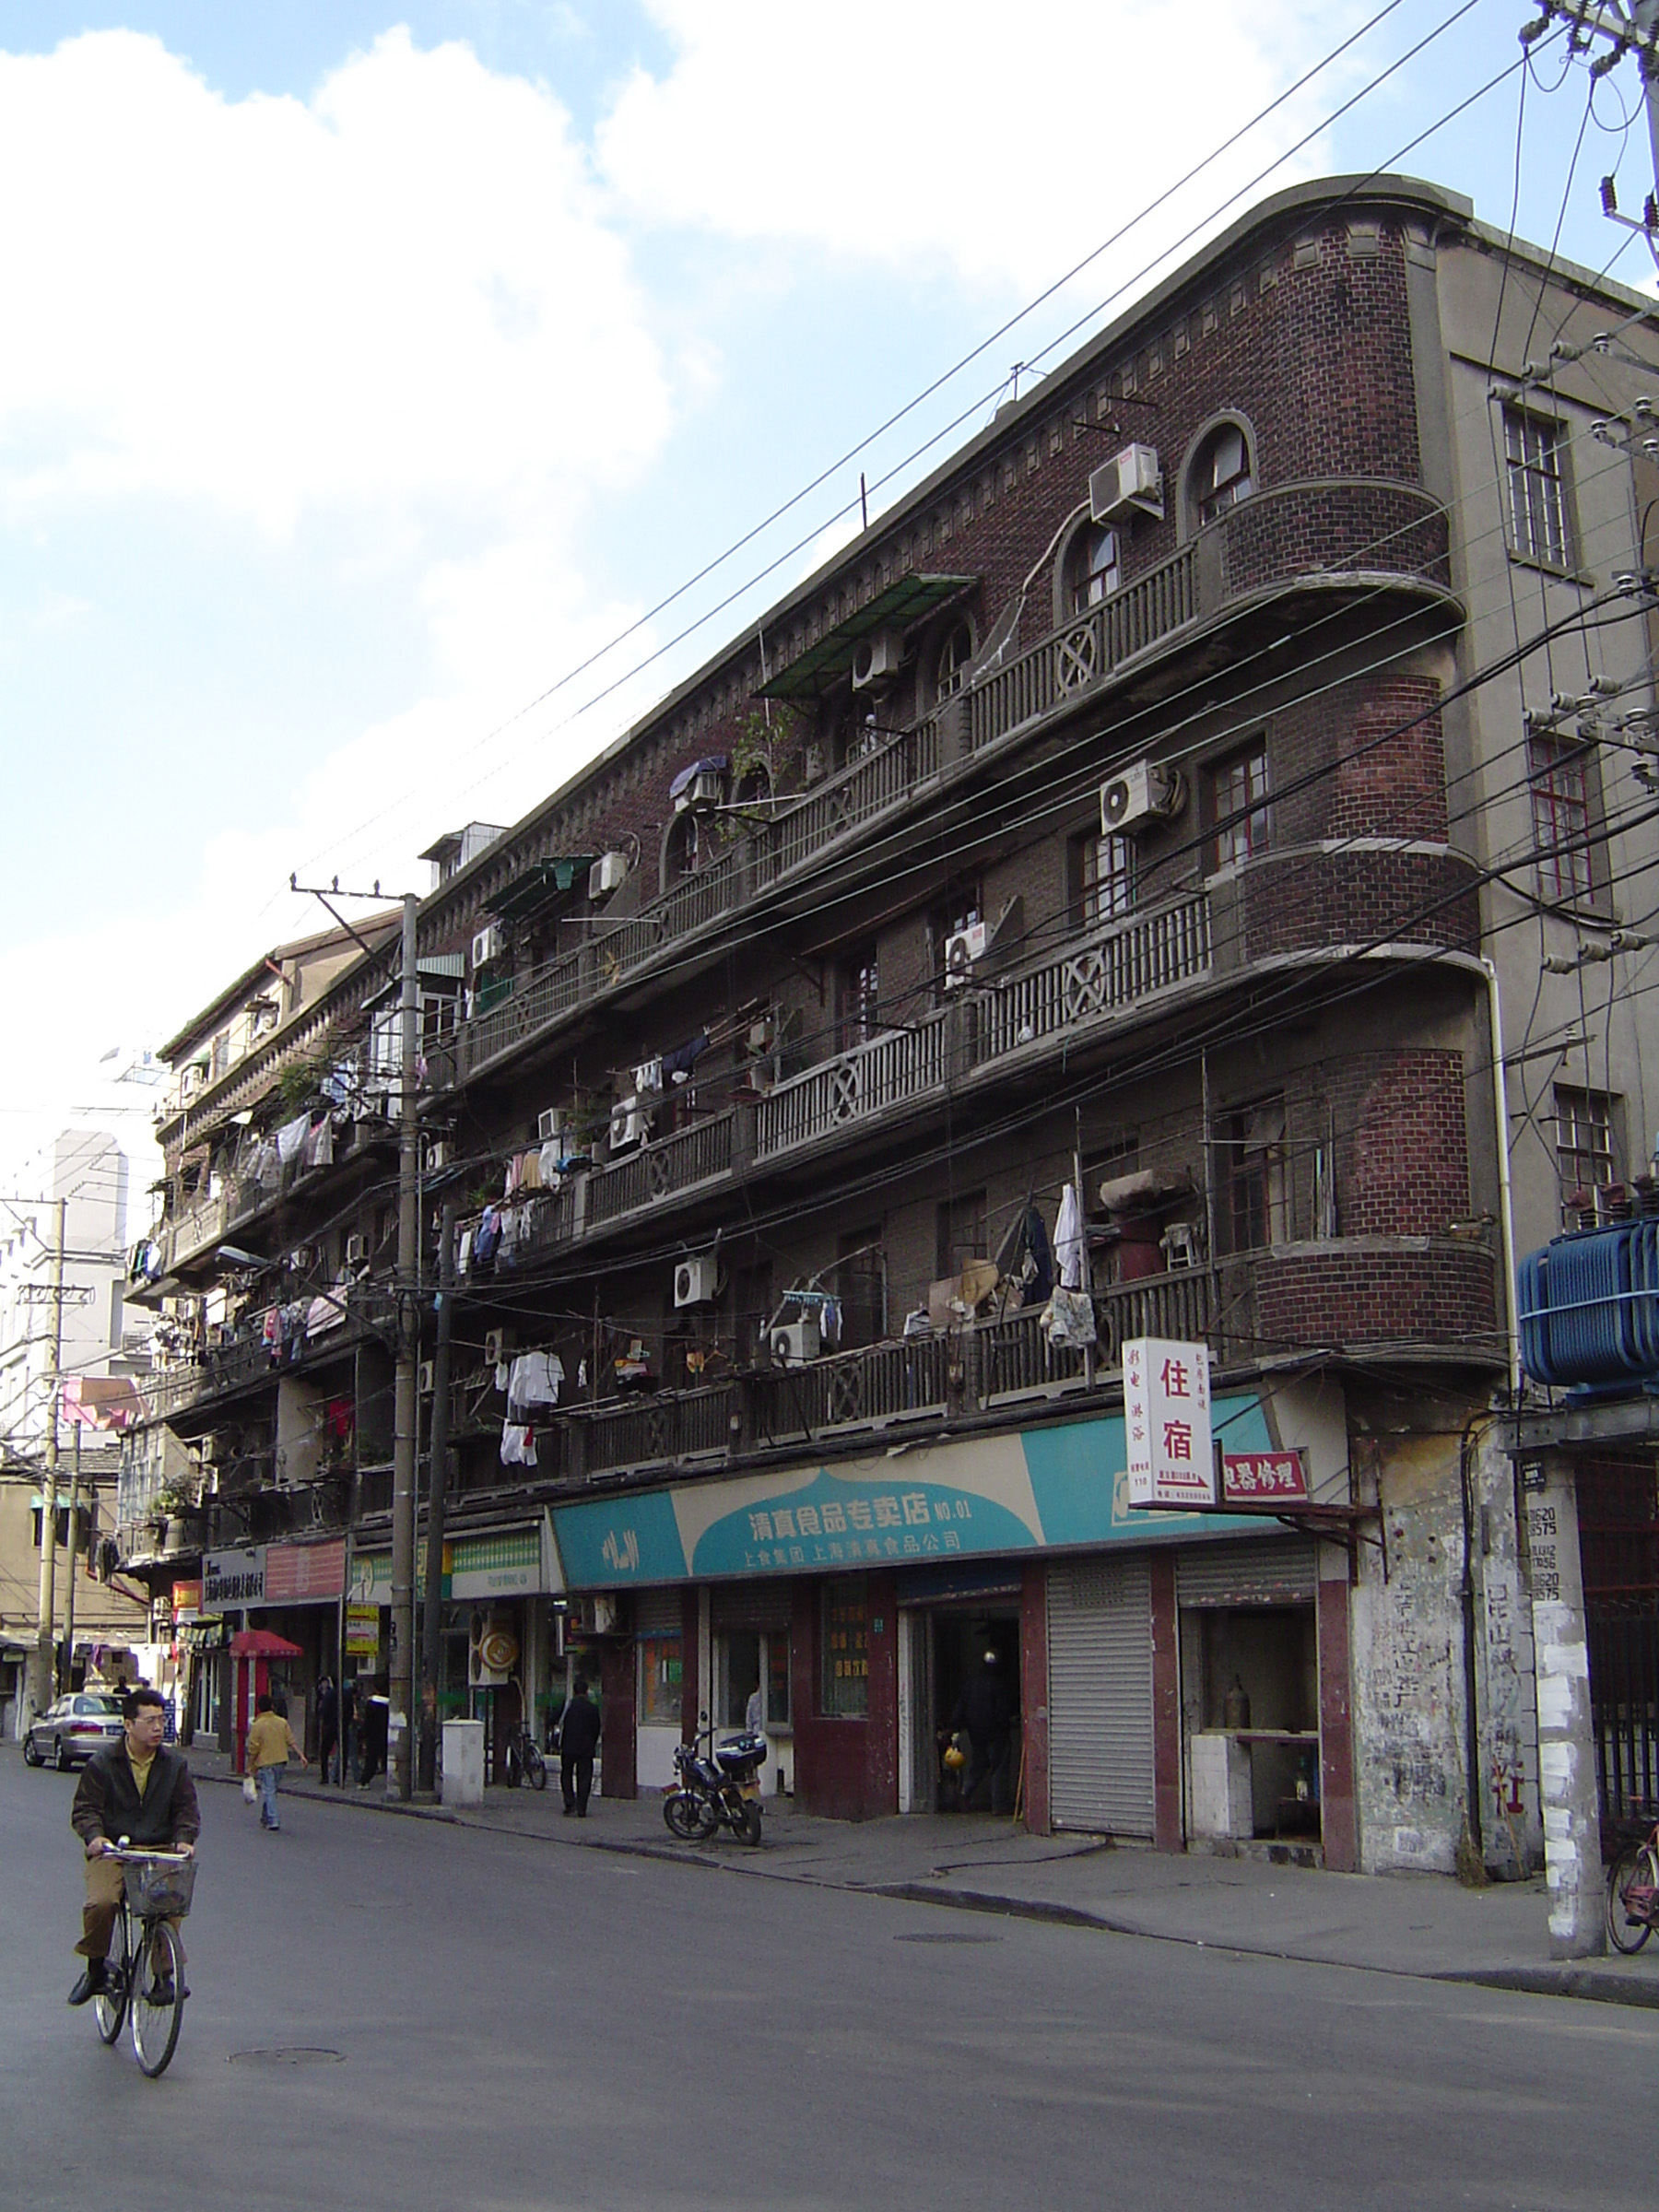 Huge Vintage Building on Chinese Street Side, Captured with Bicycle Passing by